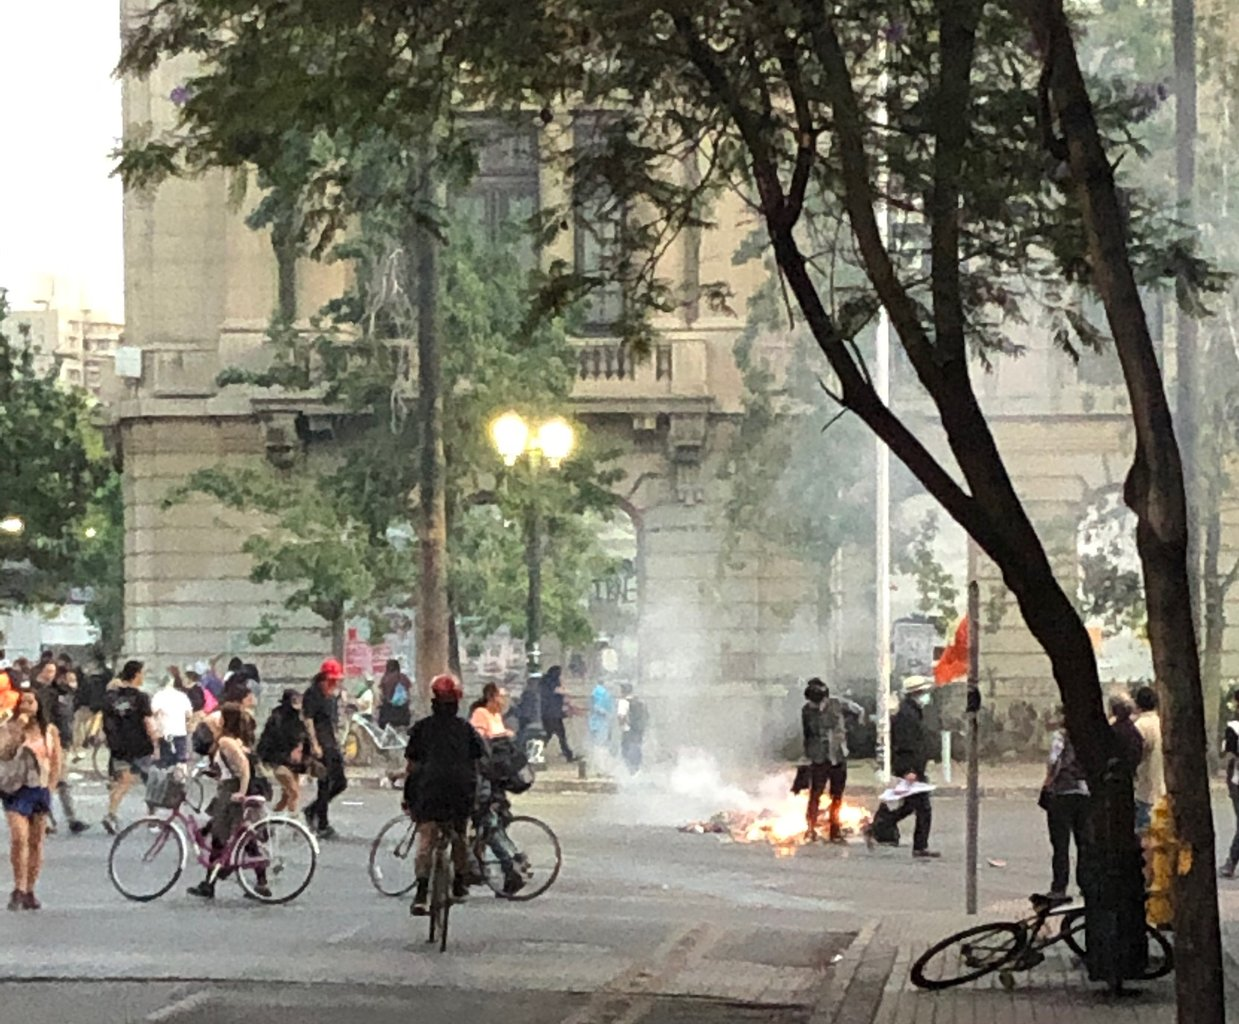 Protest in Santiago Chile 2019 | Photo taken by Melody B